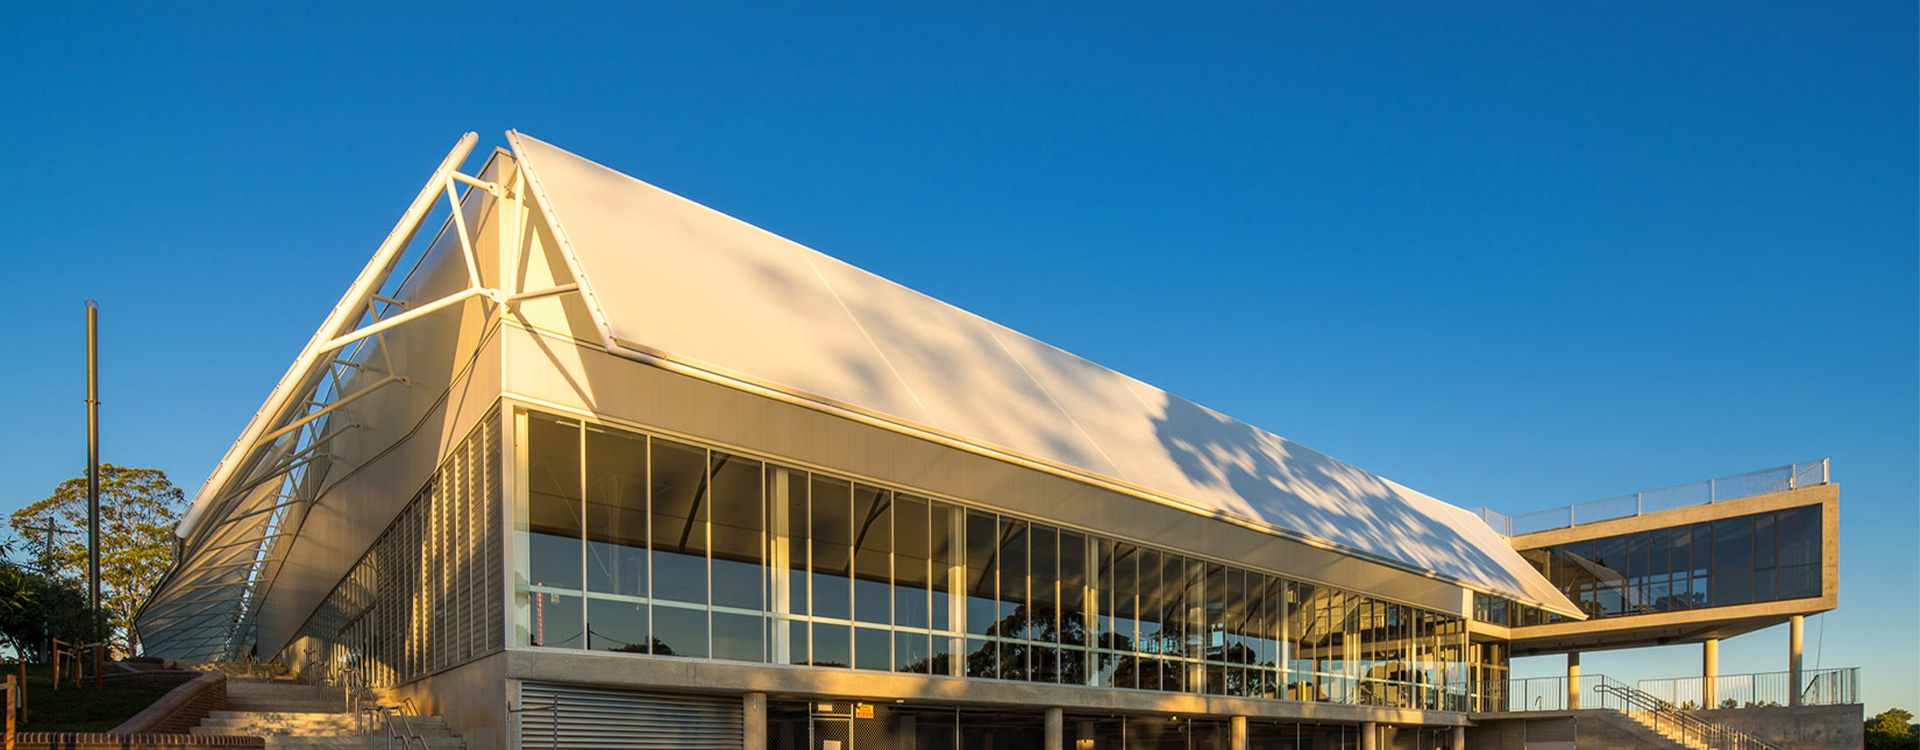 Barker College Rosewood Centre Fabric Awnings